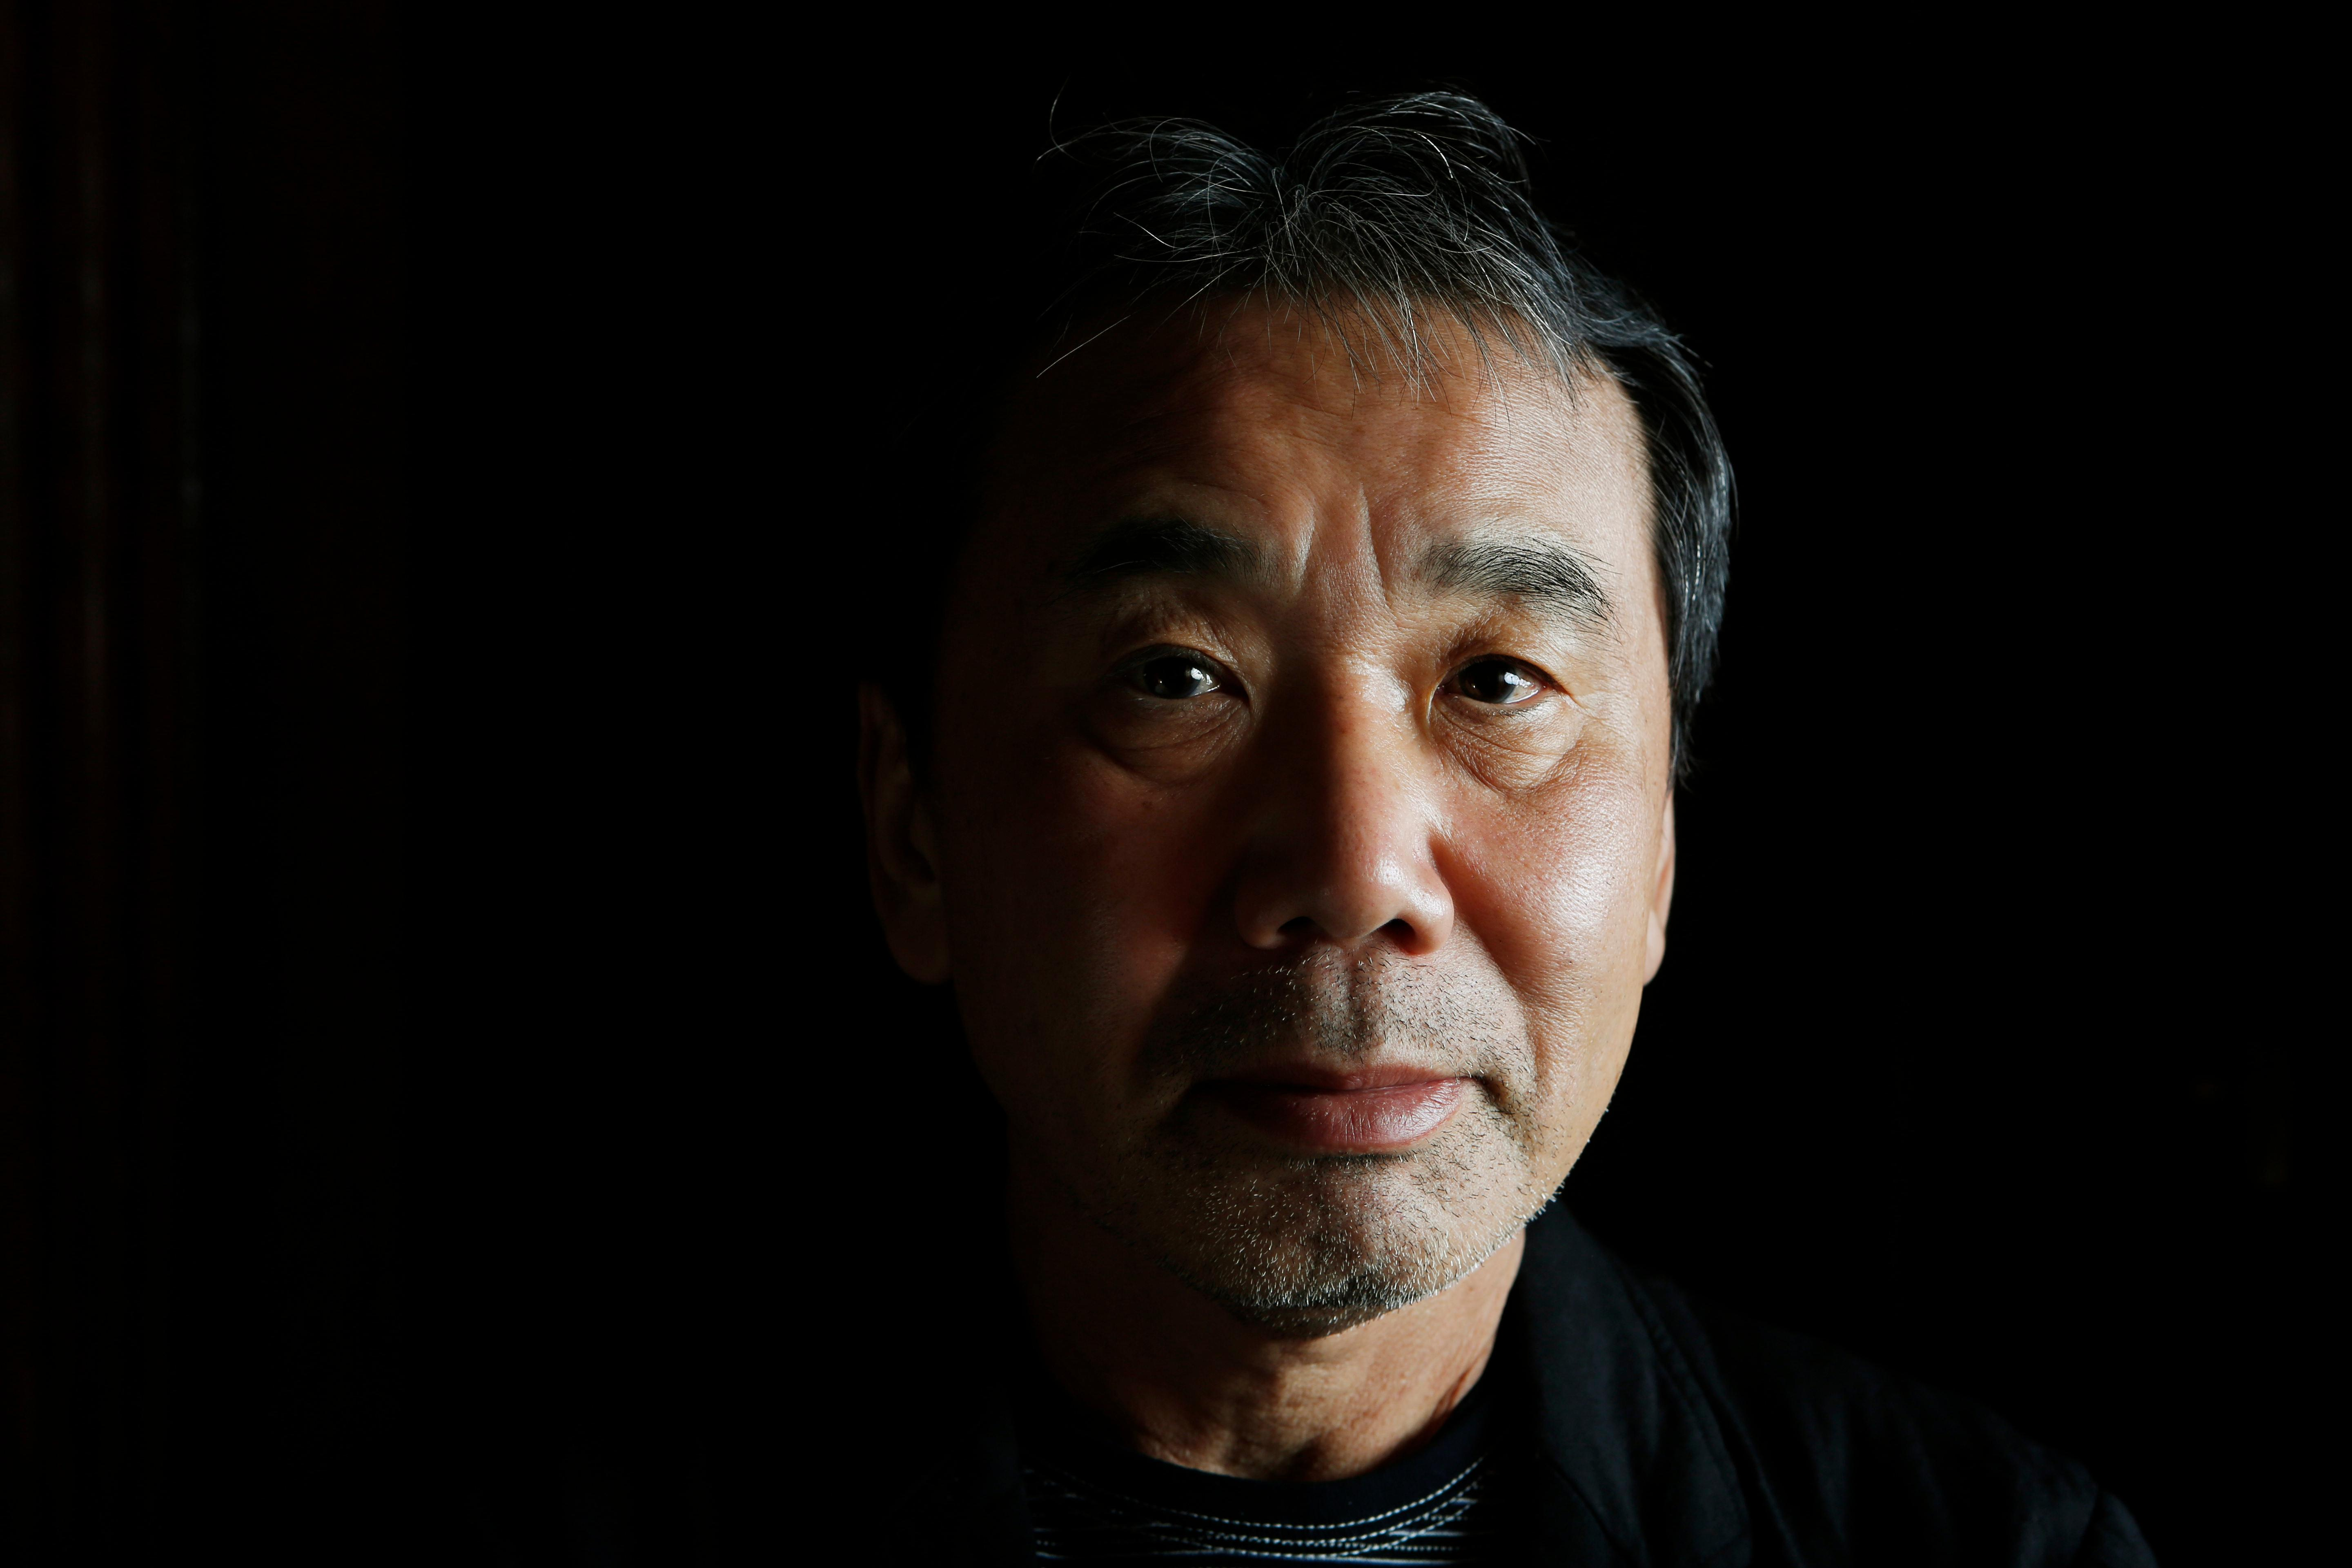 Haruki Murakami: 'You have to go through the darkness before you get to the light'